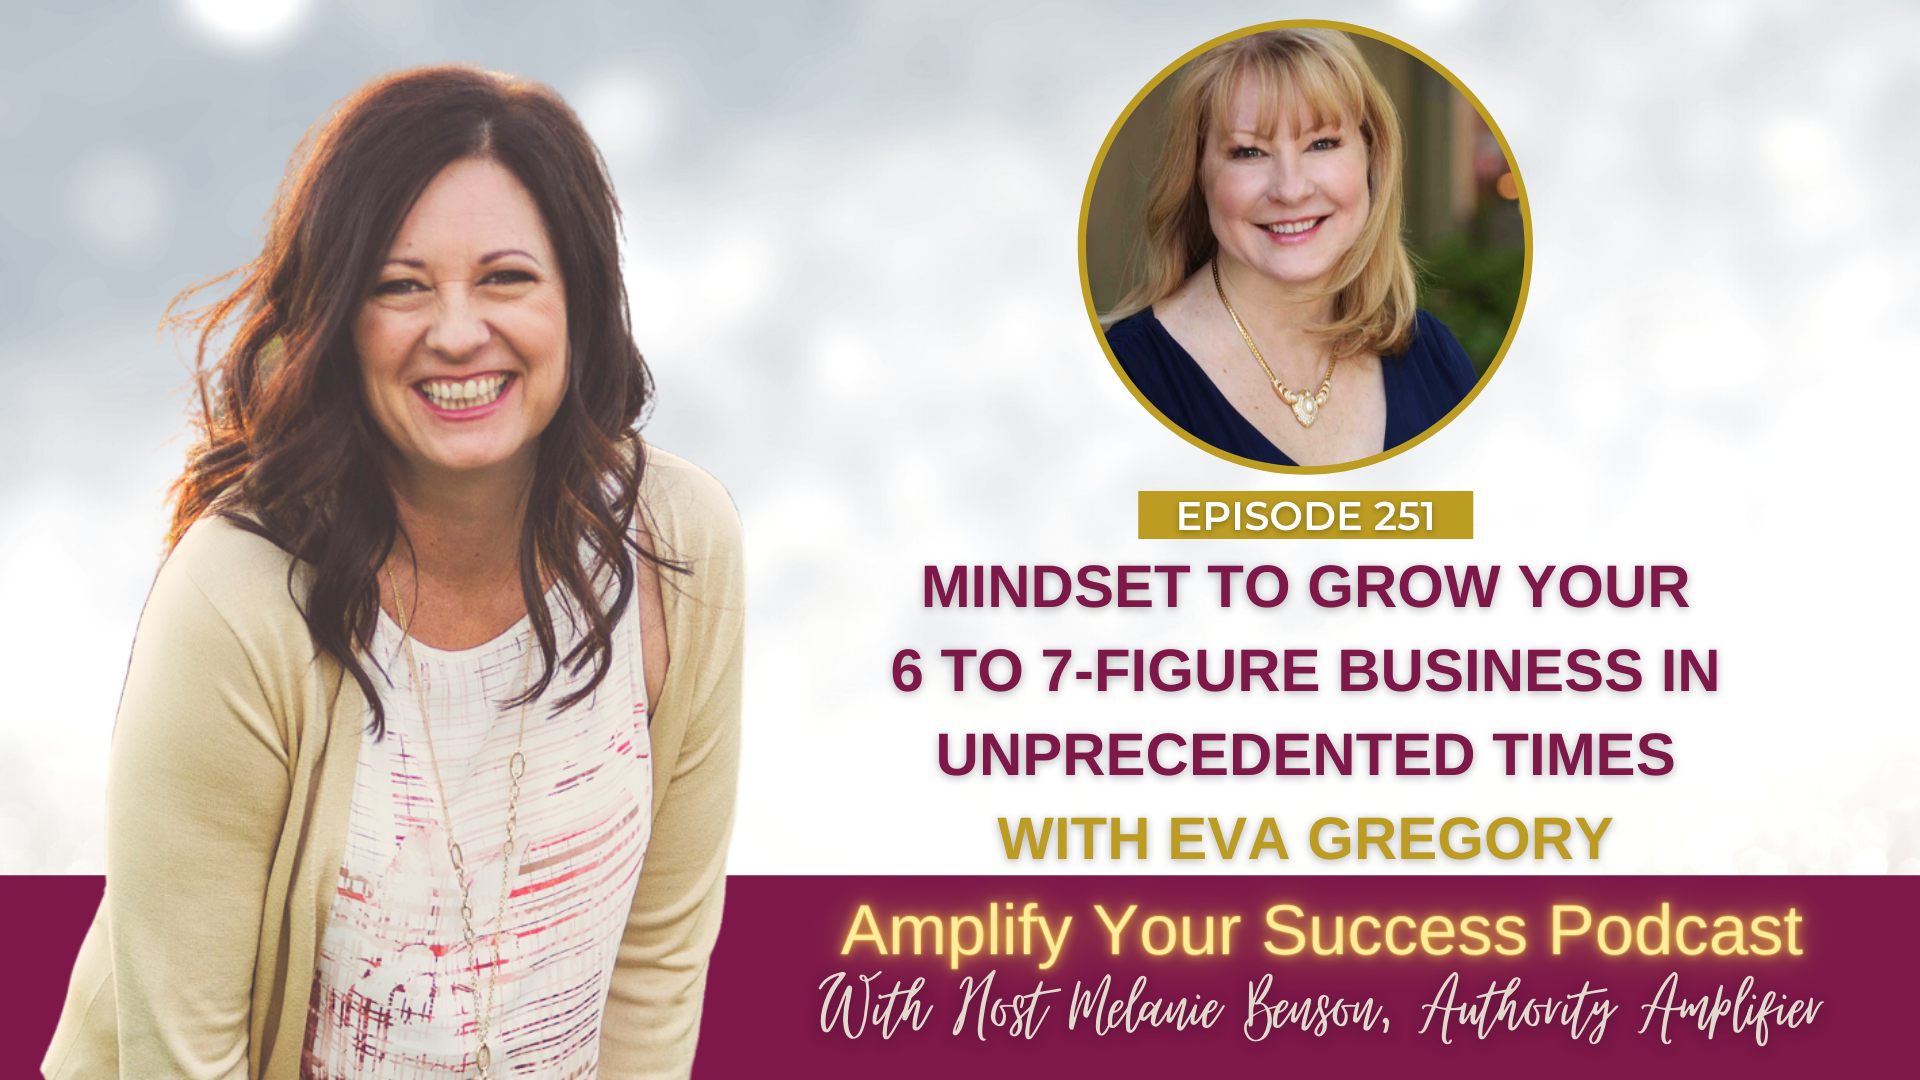 Mindset To Grow Your Business In Unprecedented Times With Eva Gregory